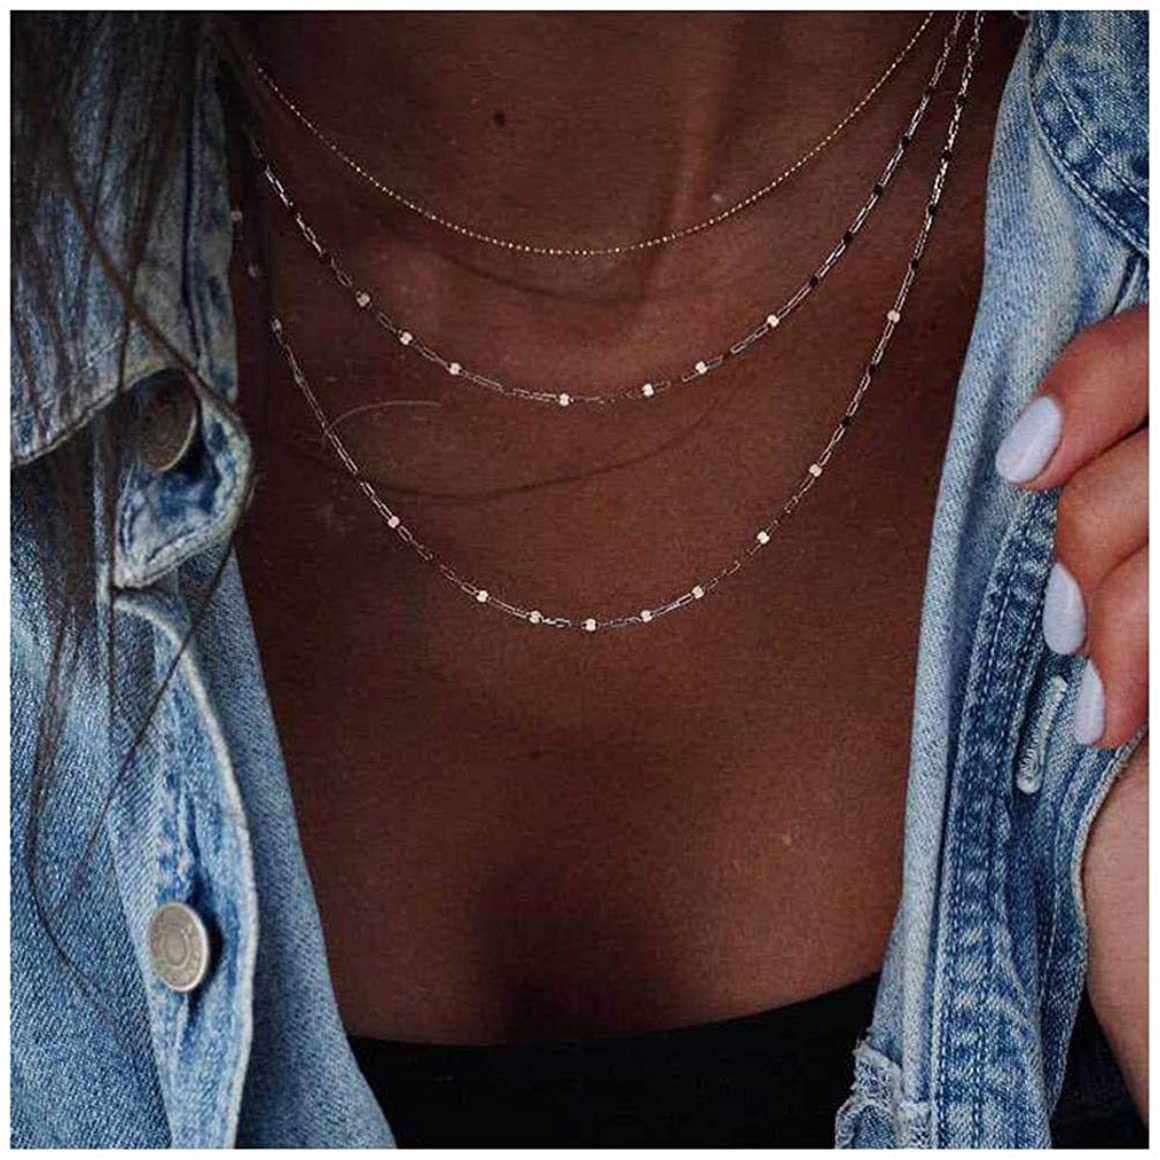 CanB Layered Choker Necklace Dainty Gold Necklaces Charm Chain Necklaces Jewelry Decorative Short Simple Necklace Sexy Chokers Neckalces for Women Girls